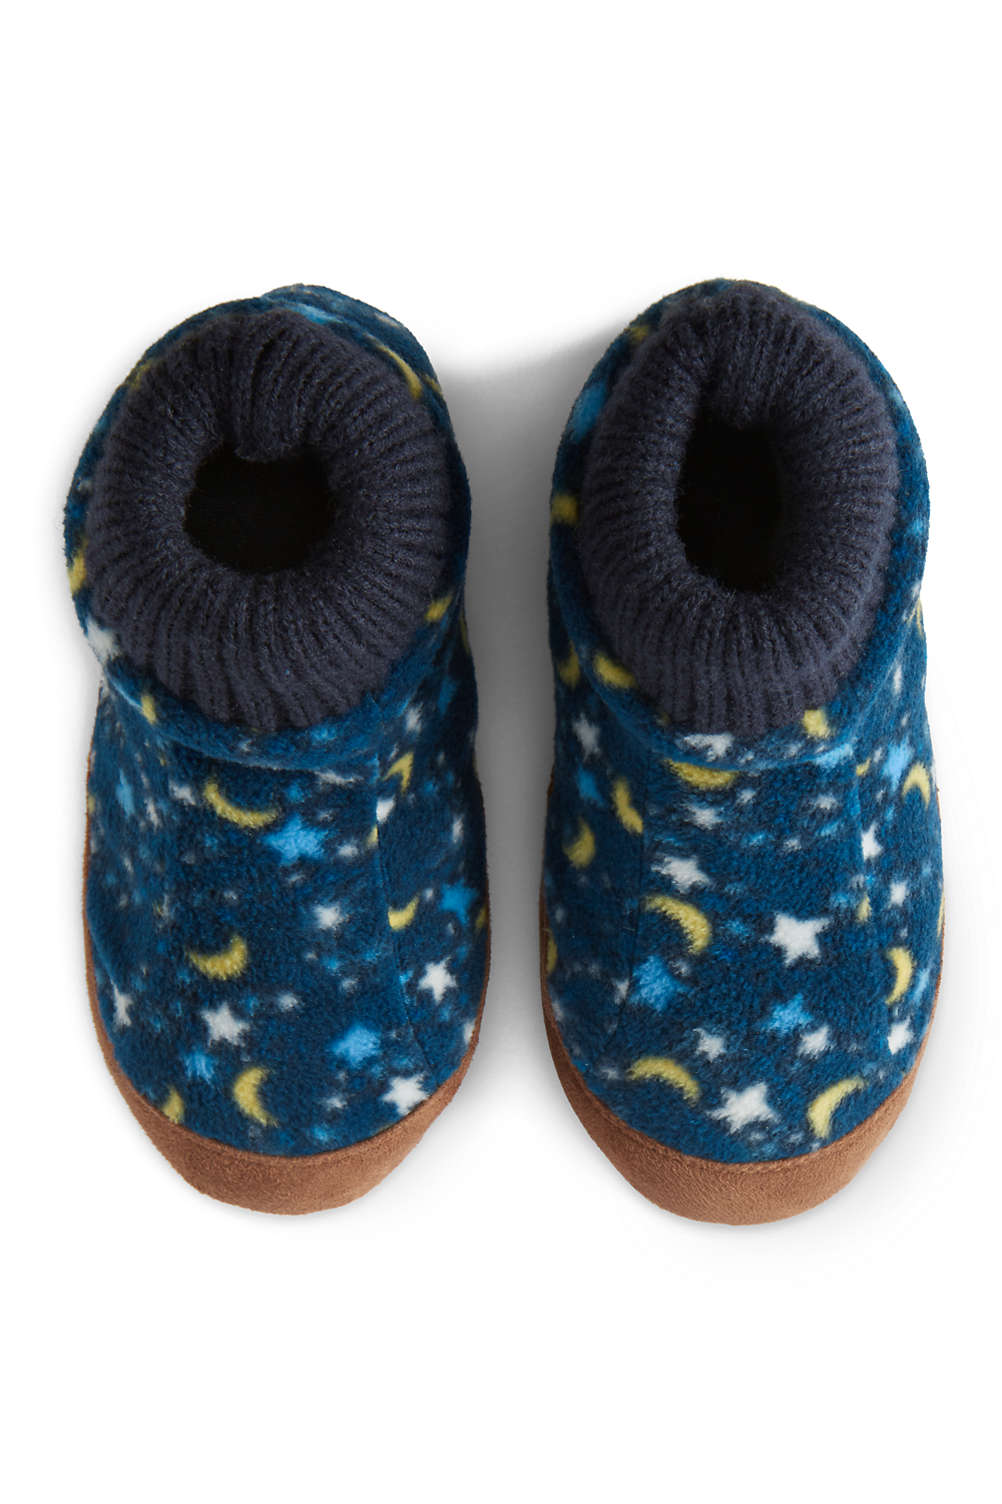 adc243abf Toddlers Fleece Bootie Slippers from Lands  End